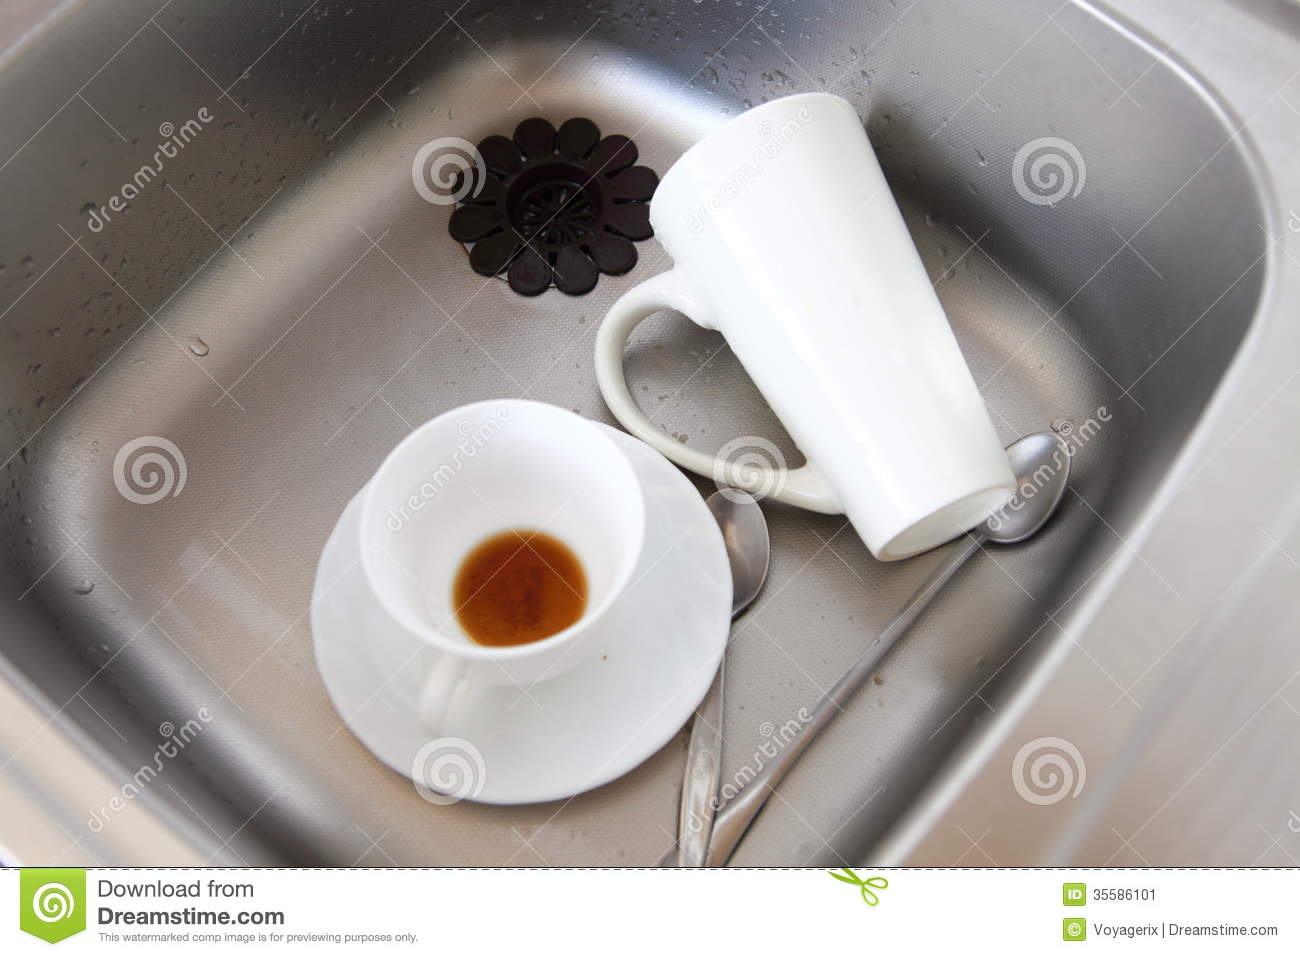 Dishwashing White Dishes In The Kitchen Sink Stock Image